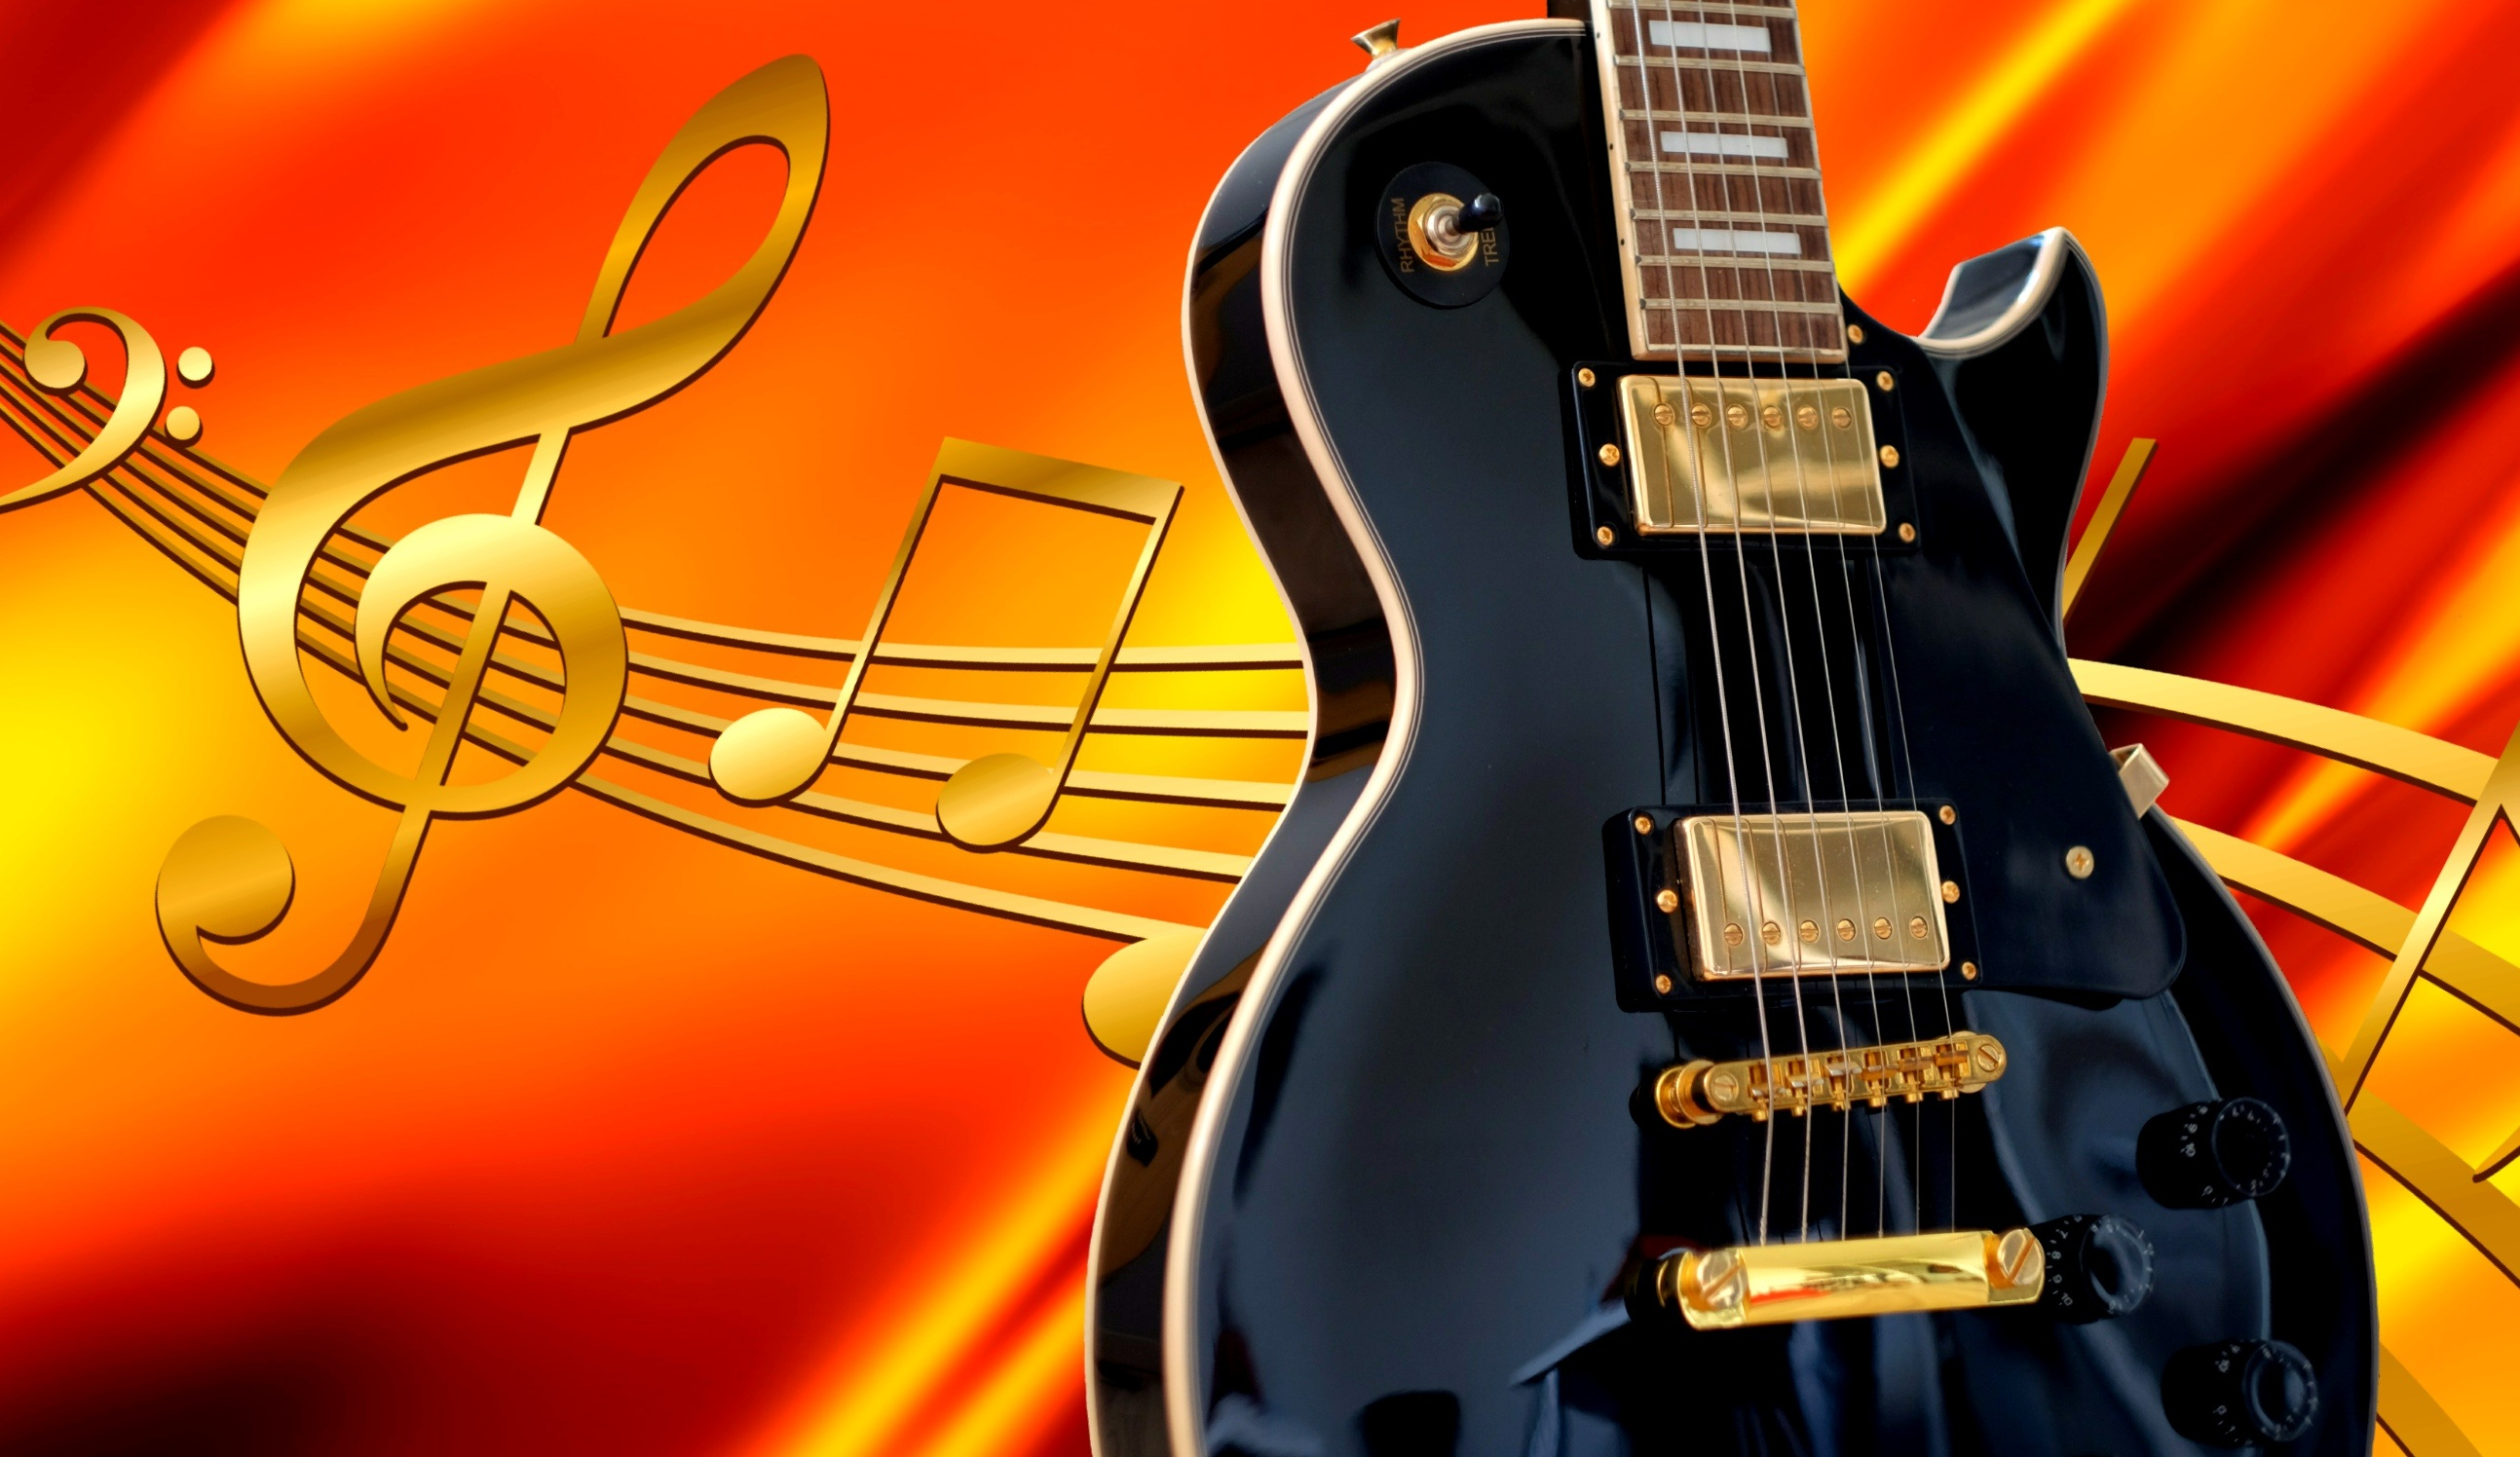 Artistic Music Notes And Guitar Wallpaper Hd Wallpaper Background Image 2587x1496 Id 884420 Wallpaper Abyss